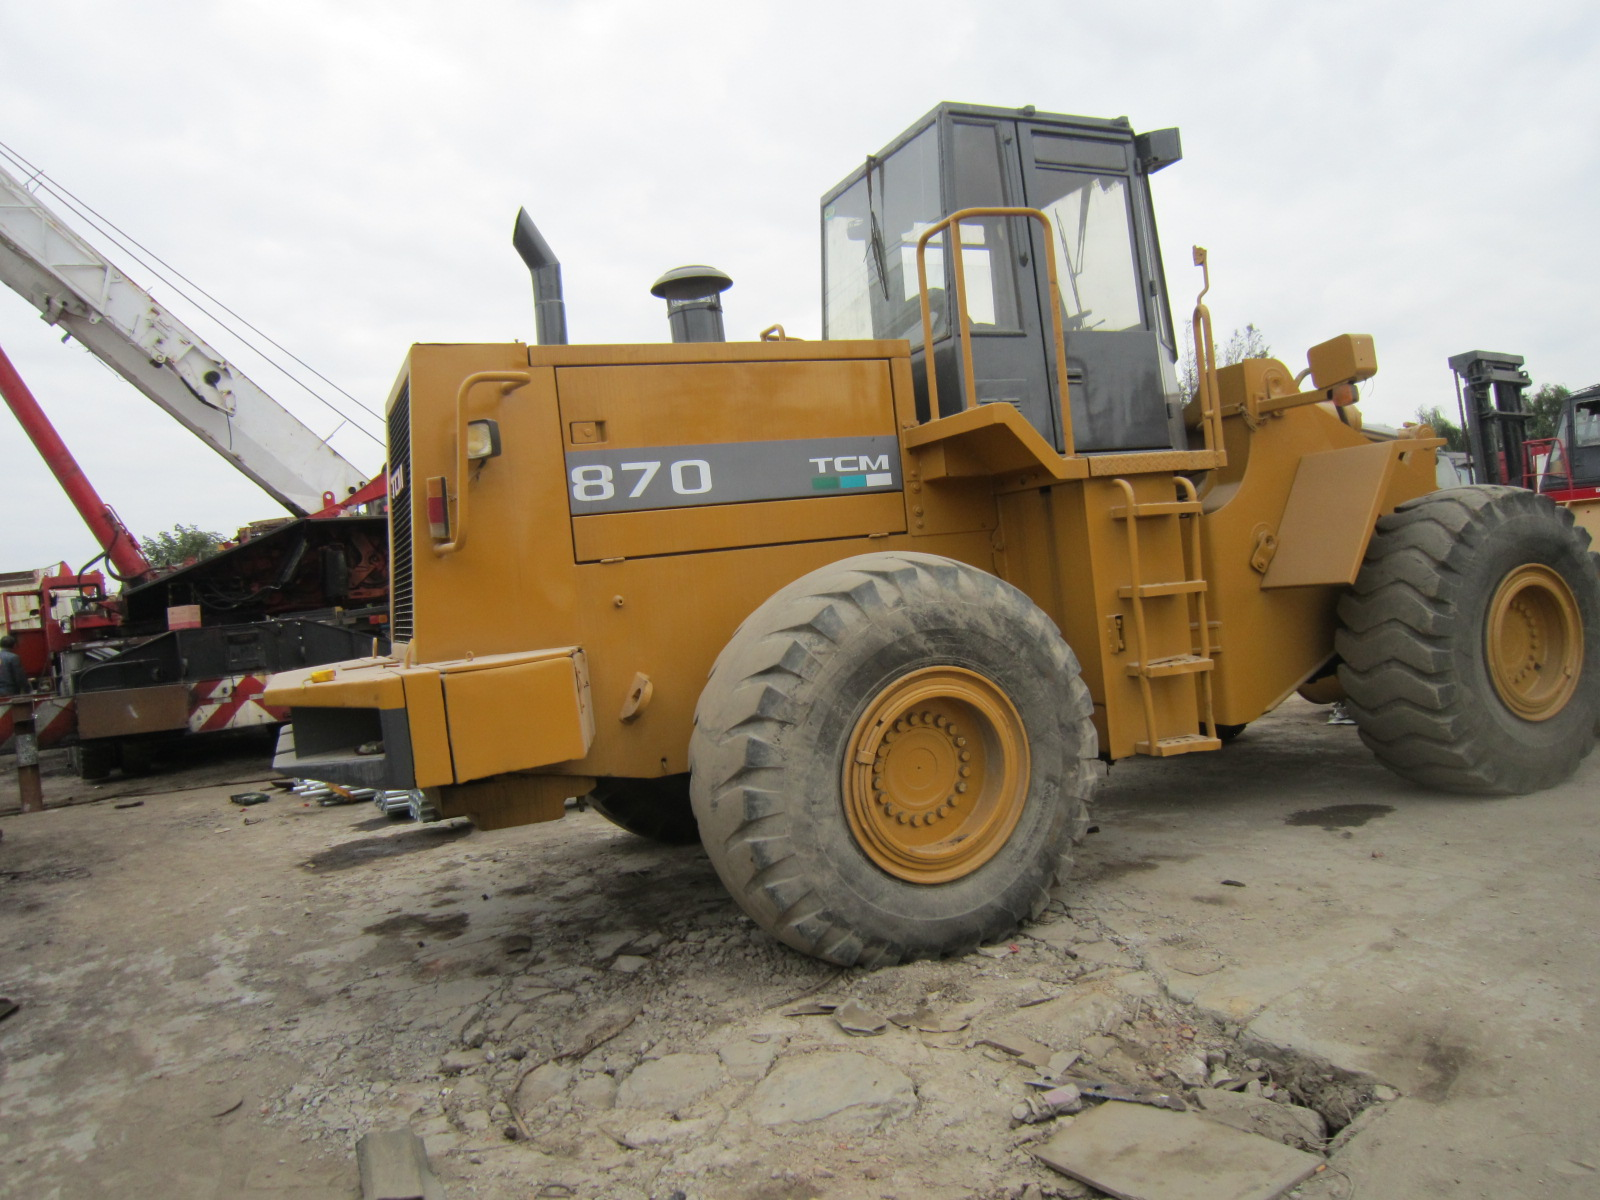 Used Wheel Loader Tcm 870 from Japan Good Condition Cheap Price in Shanghai for Sale